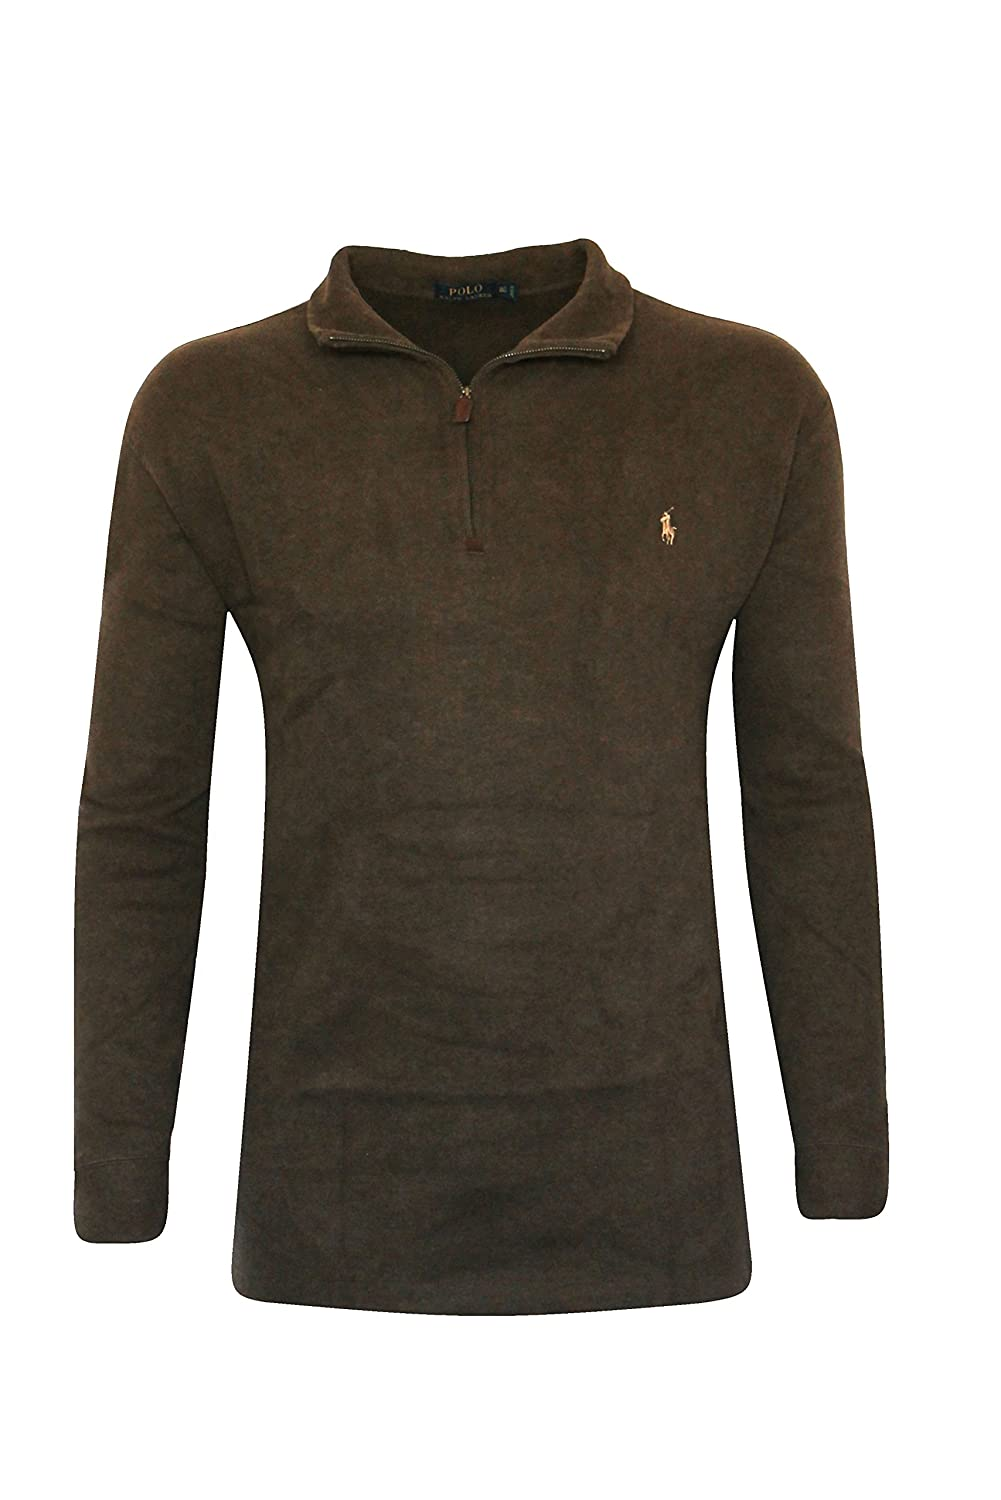 Polo Ralph lauren Mens Big and Tall PIMA COTTON HALF-ZIP SWEATER